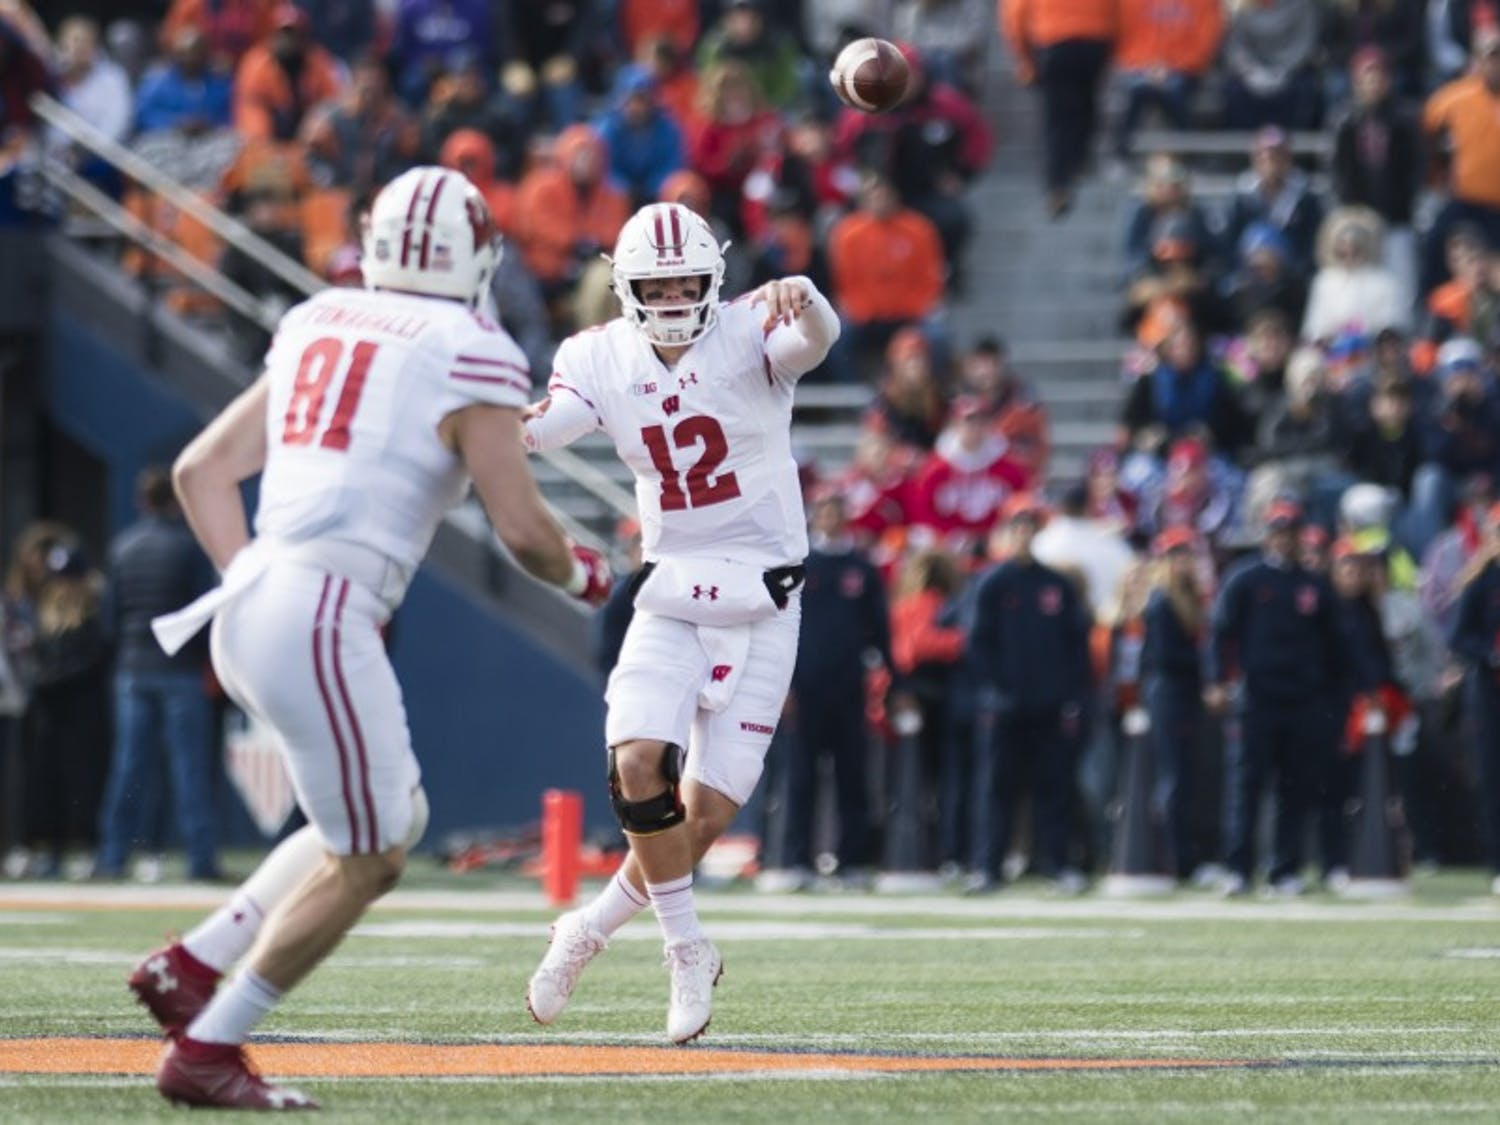 Quarterback Alex Hornibrook had a career game against BYU in 2017, and he'll need to rely on his deep receiving corps to replicate that performance on Saturday.